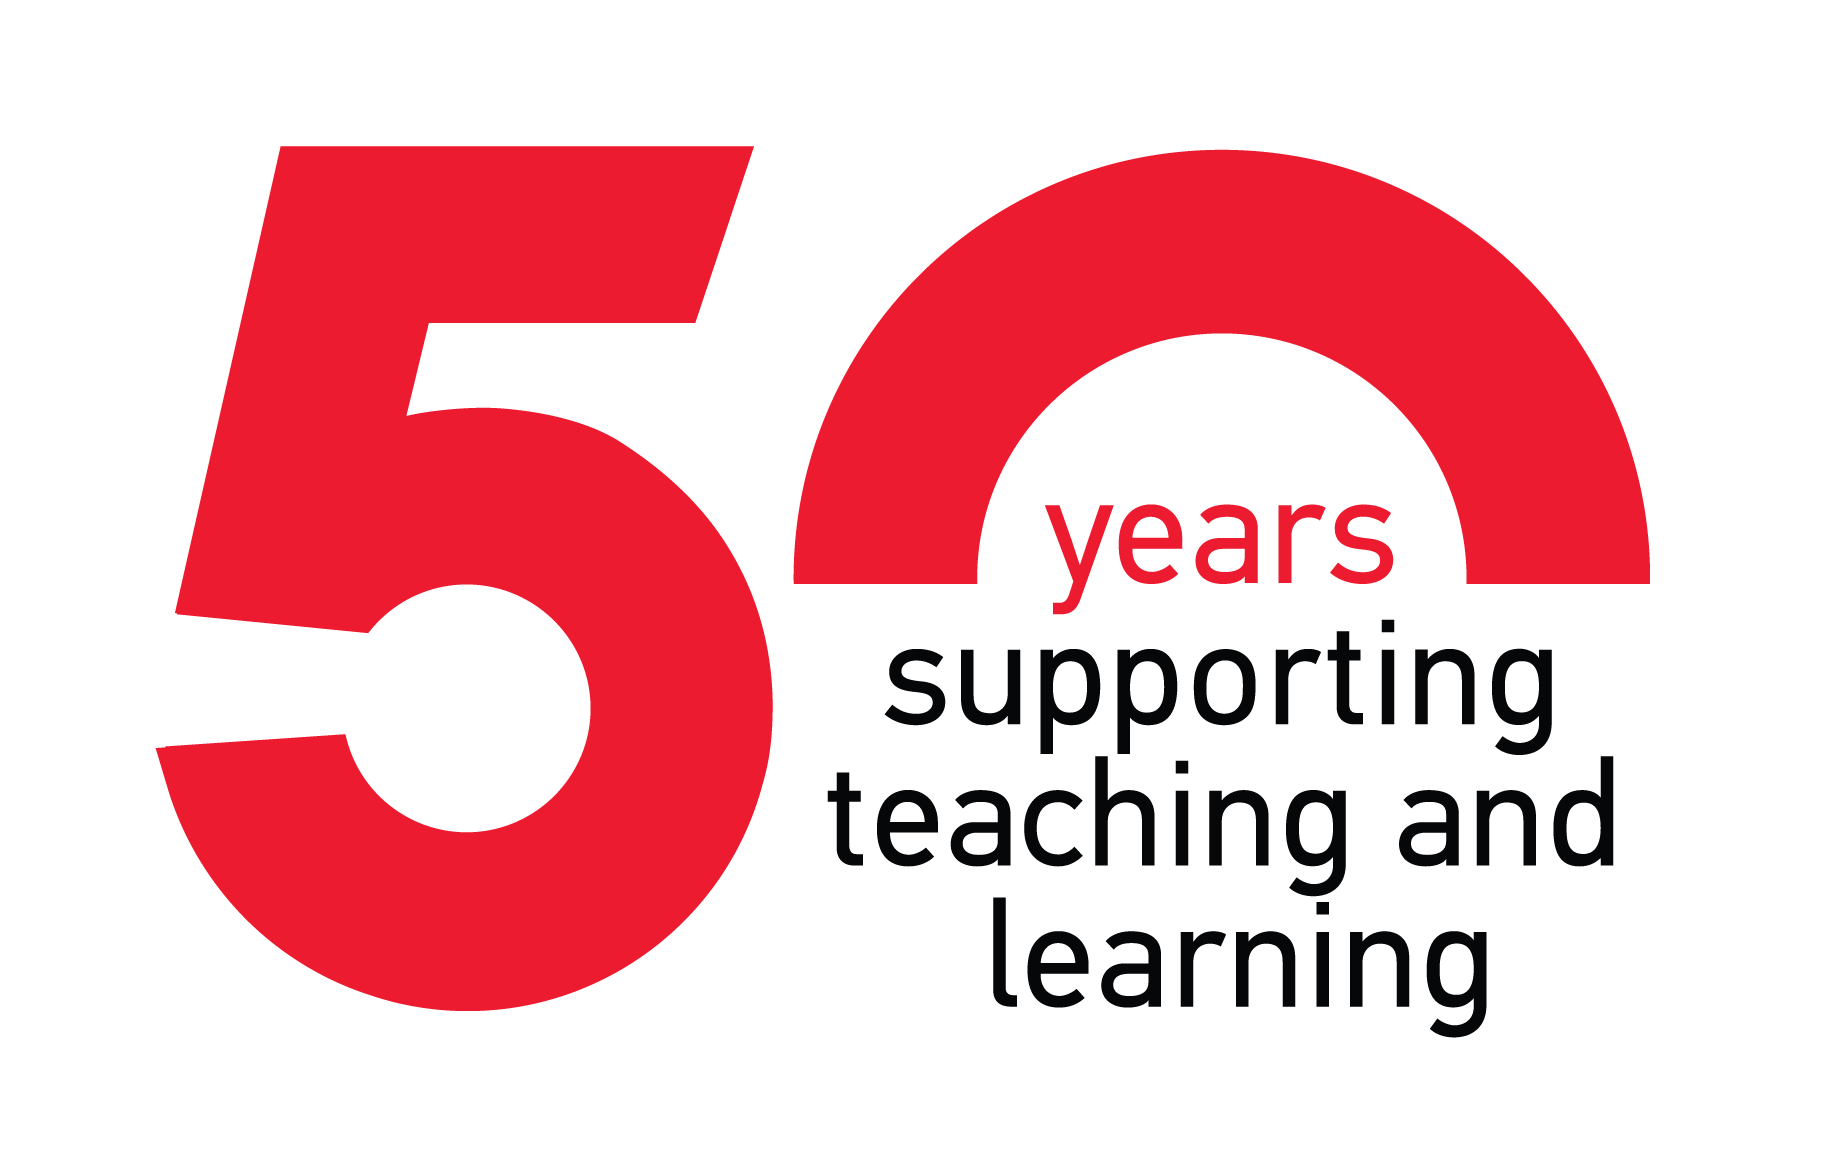 50 years supporting teaching and learning